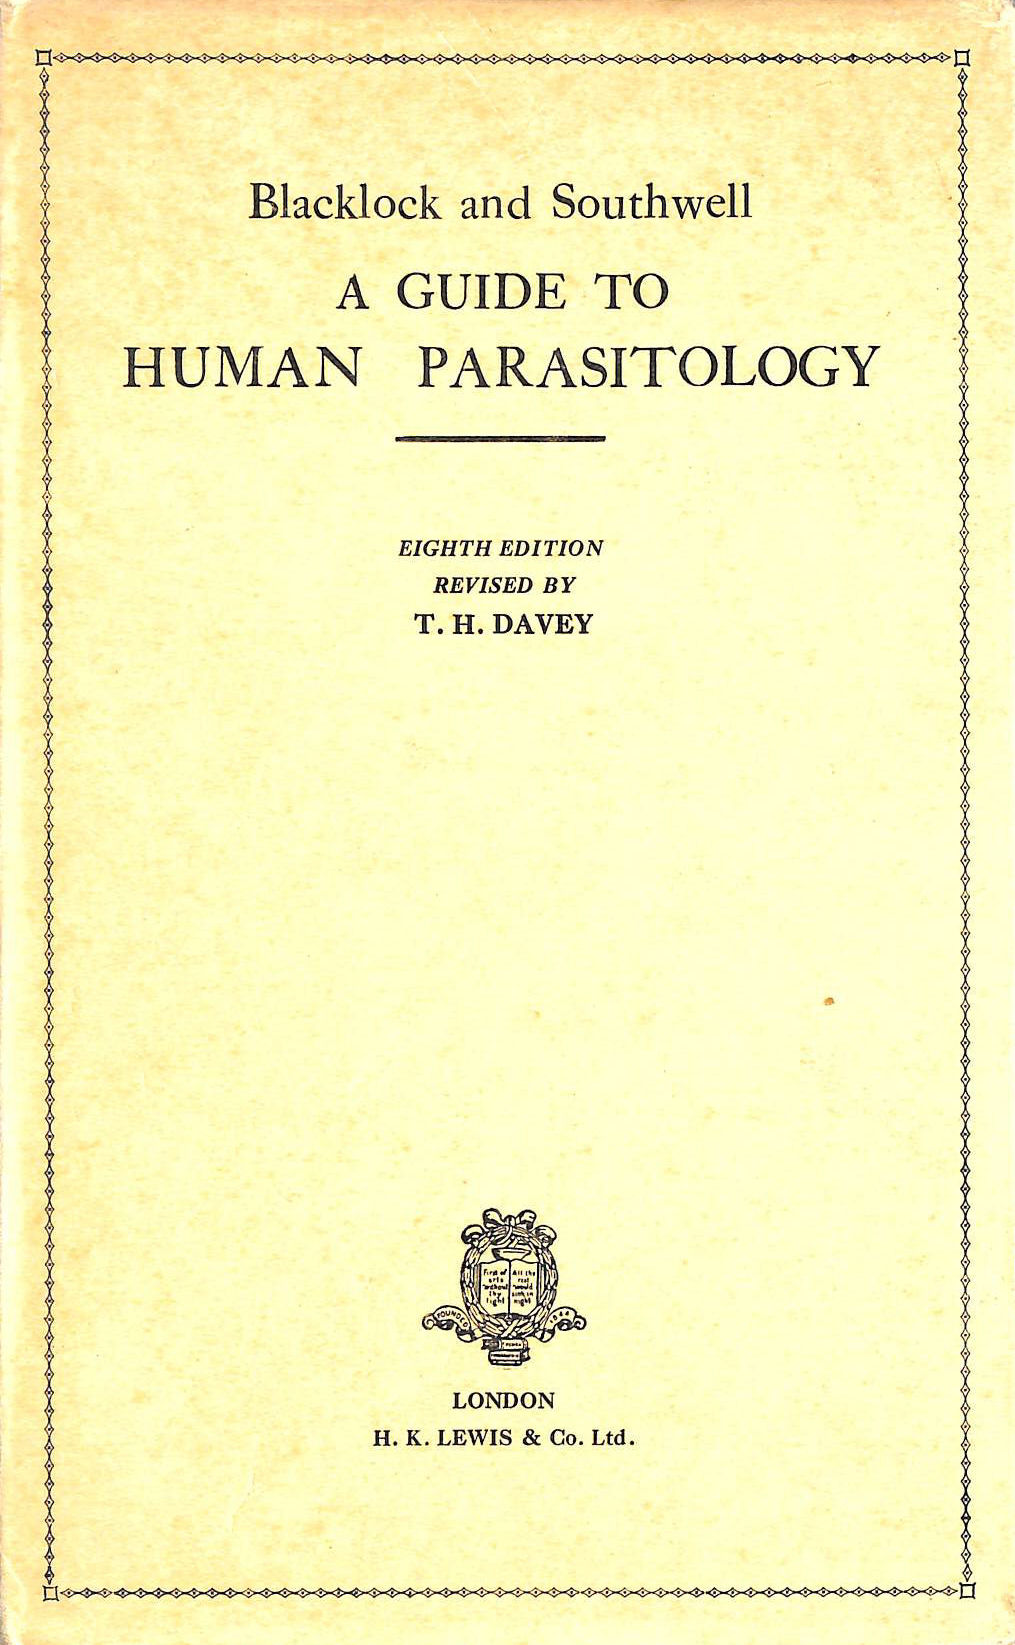 Image for A Guide to Human Parasitology by Blacklock and Southwell